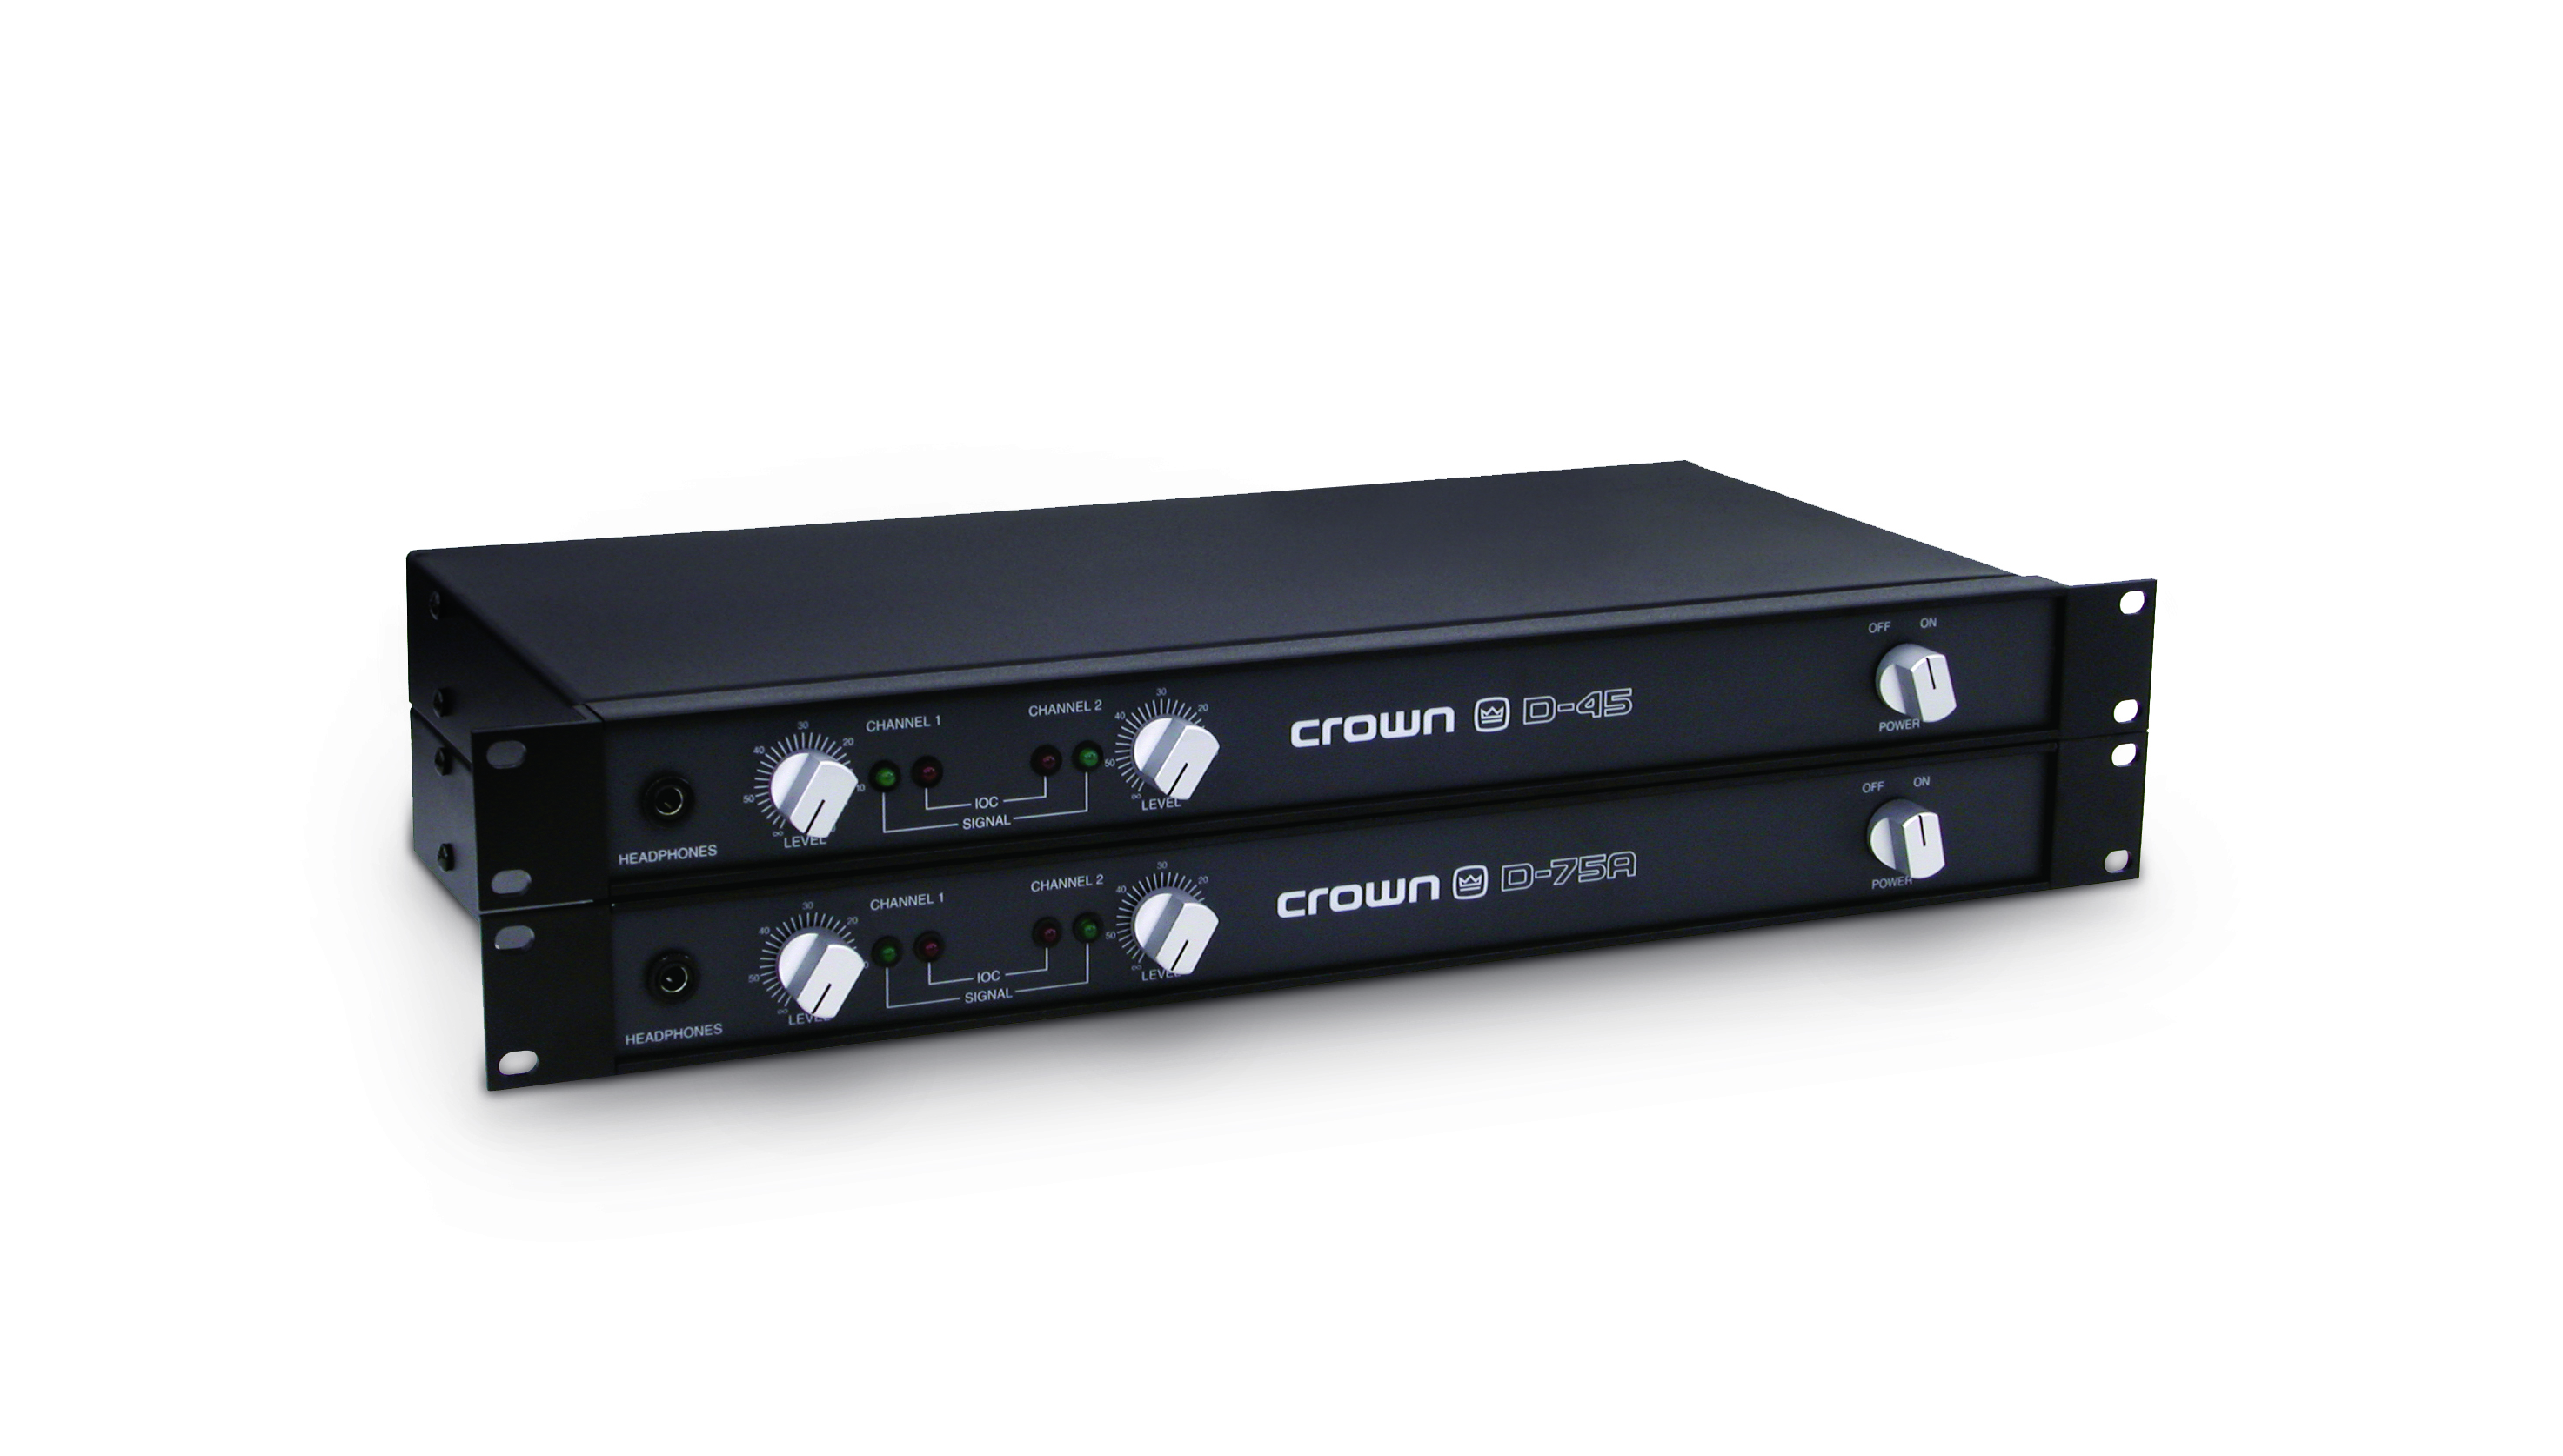 D 75a Crown Audio Professional Power Amplifiers 15 W Class B Amplifier Series Tiny Square